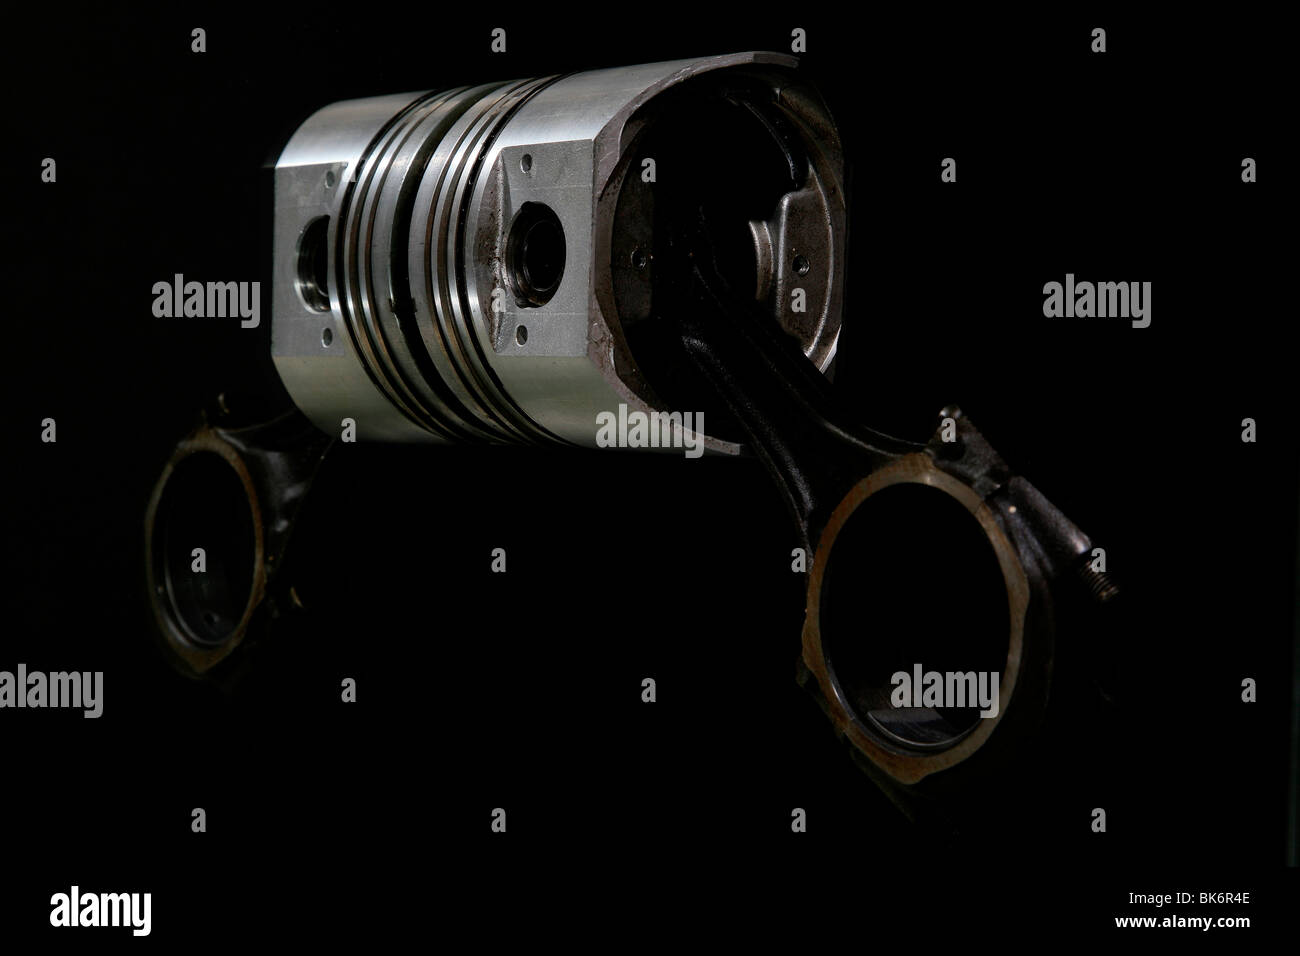 A car piston with a reflection. - Stock Image